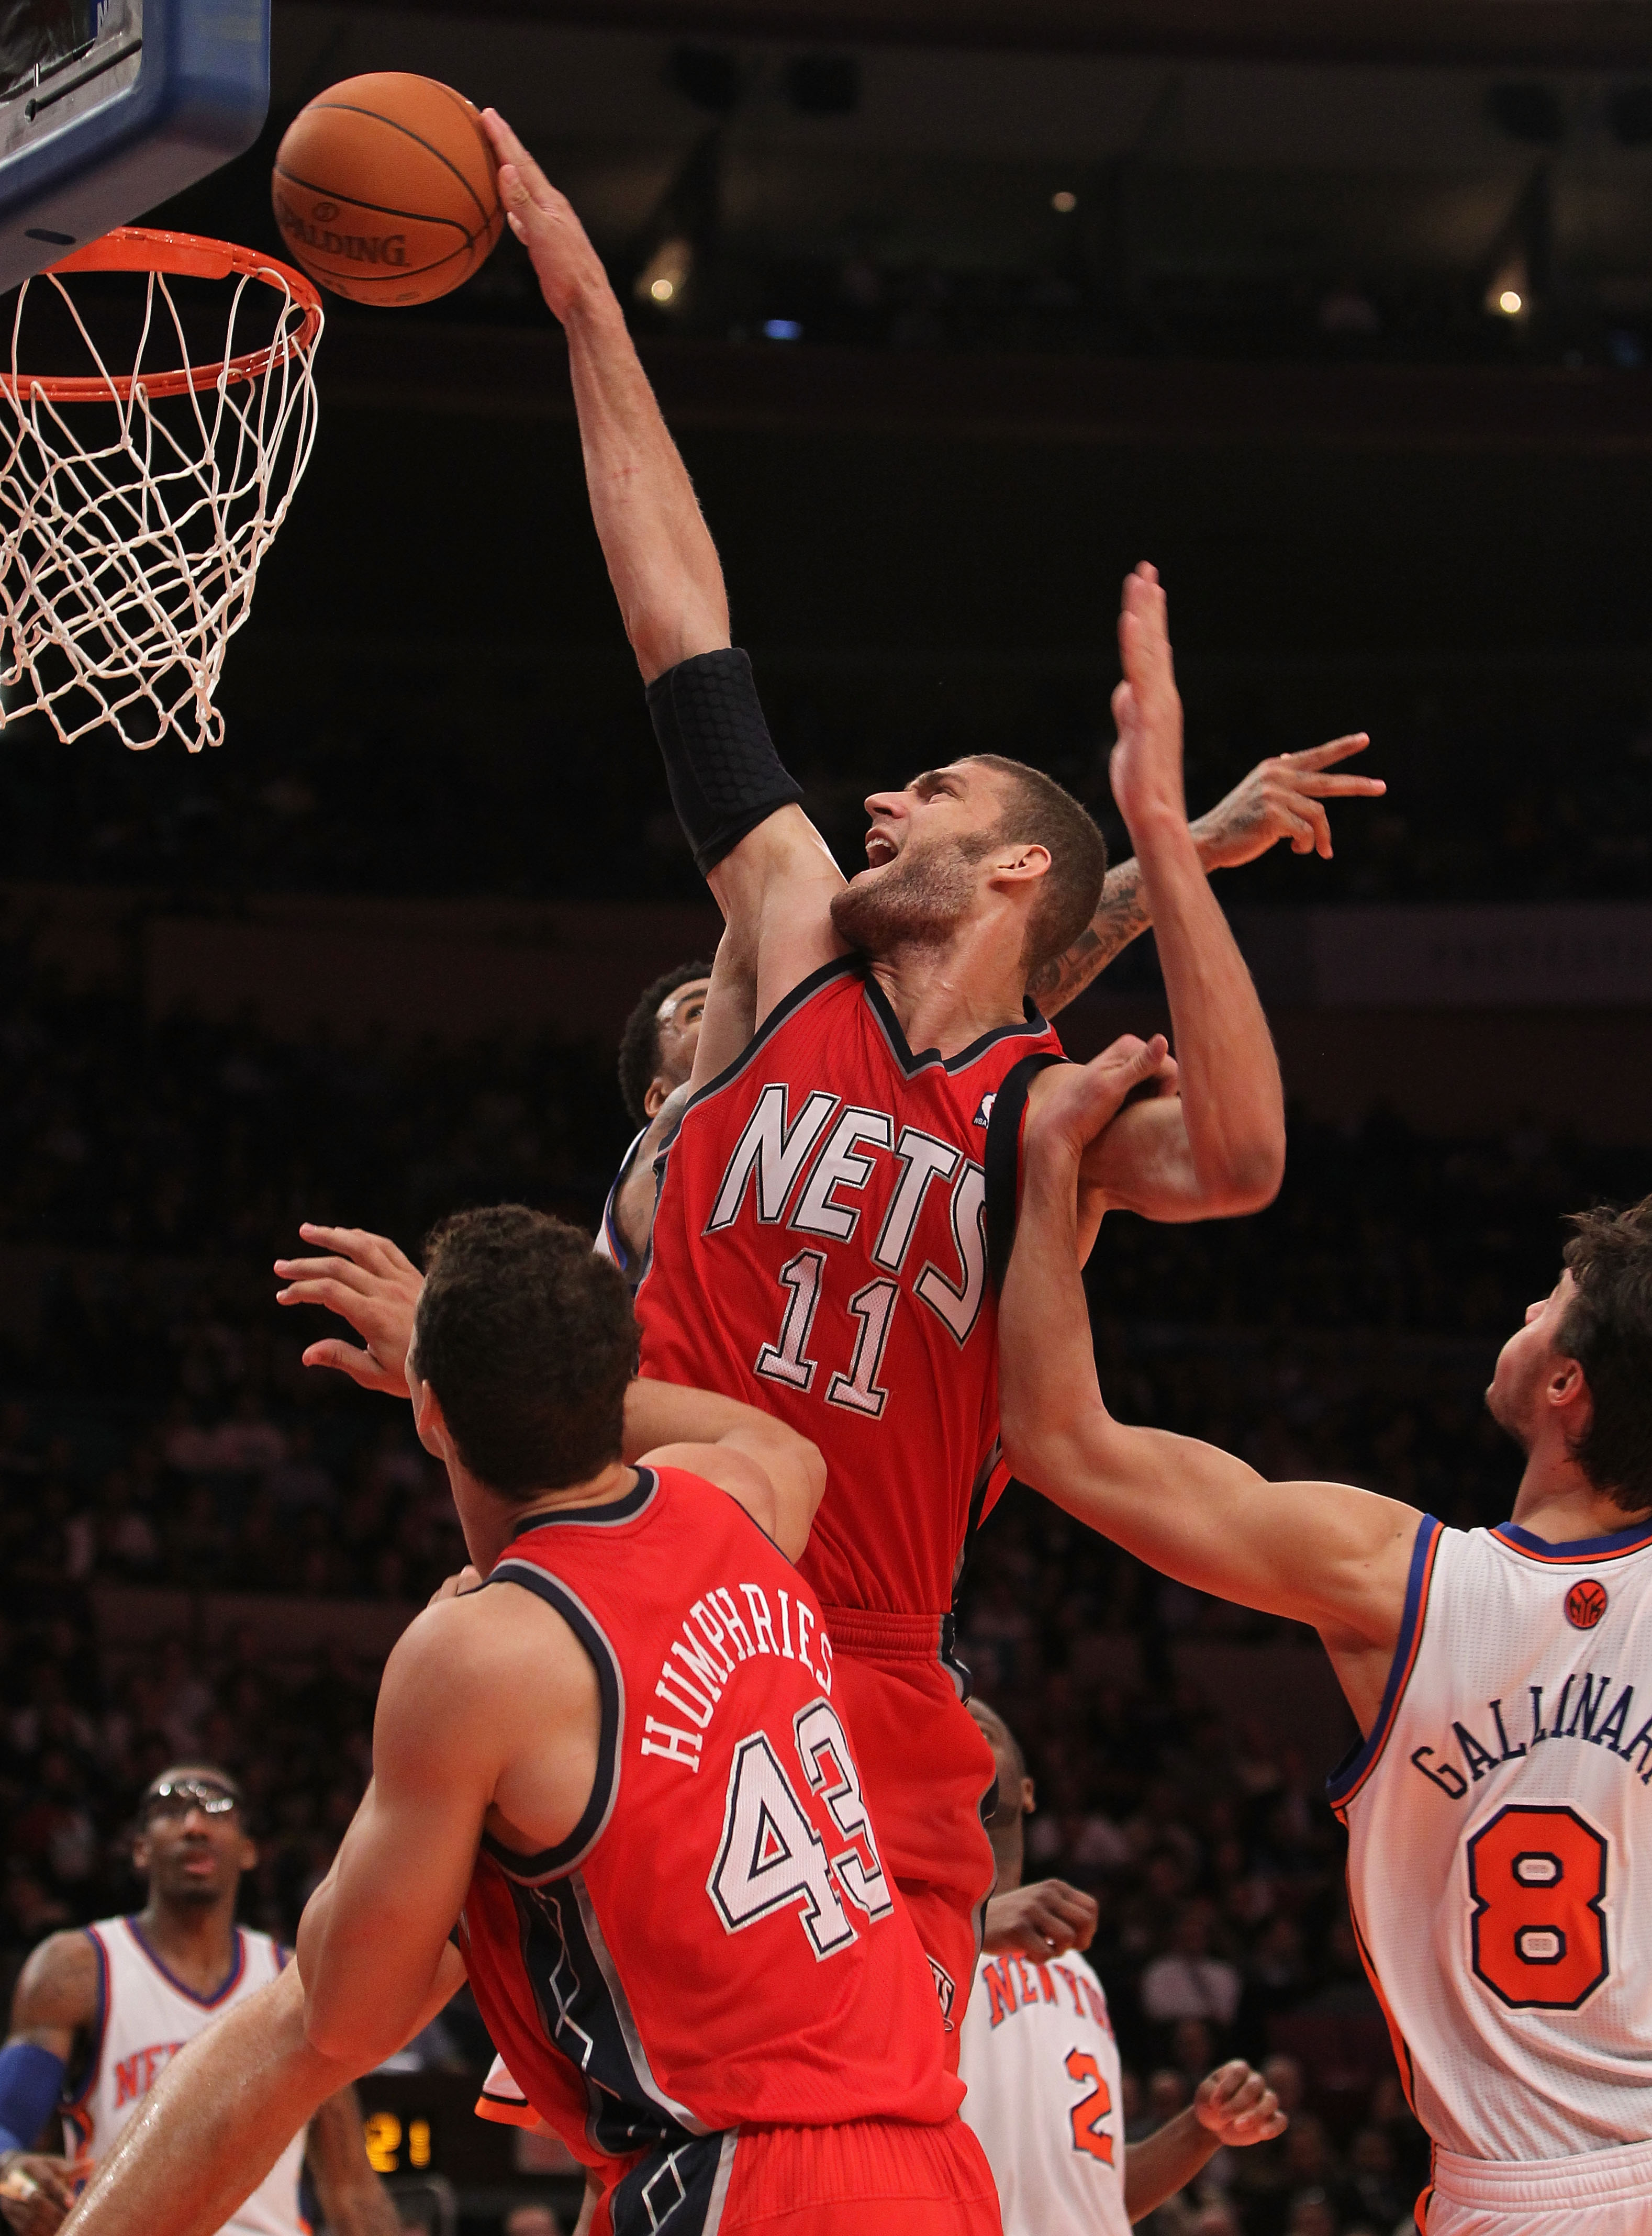 NEW YORK, NY - NOVEMBER 30: Brook Lopez #11 of the of the New Jersey Nets is fouled by Danilo Gallinari #8 of the New York Knicks on November 30, 2010 at Madison Square Garden in New York City. NOTE TO USER: User expressly acknowledges and agrees that, by